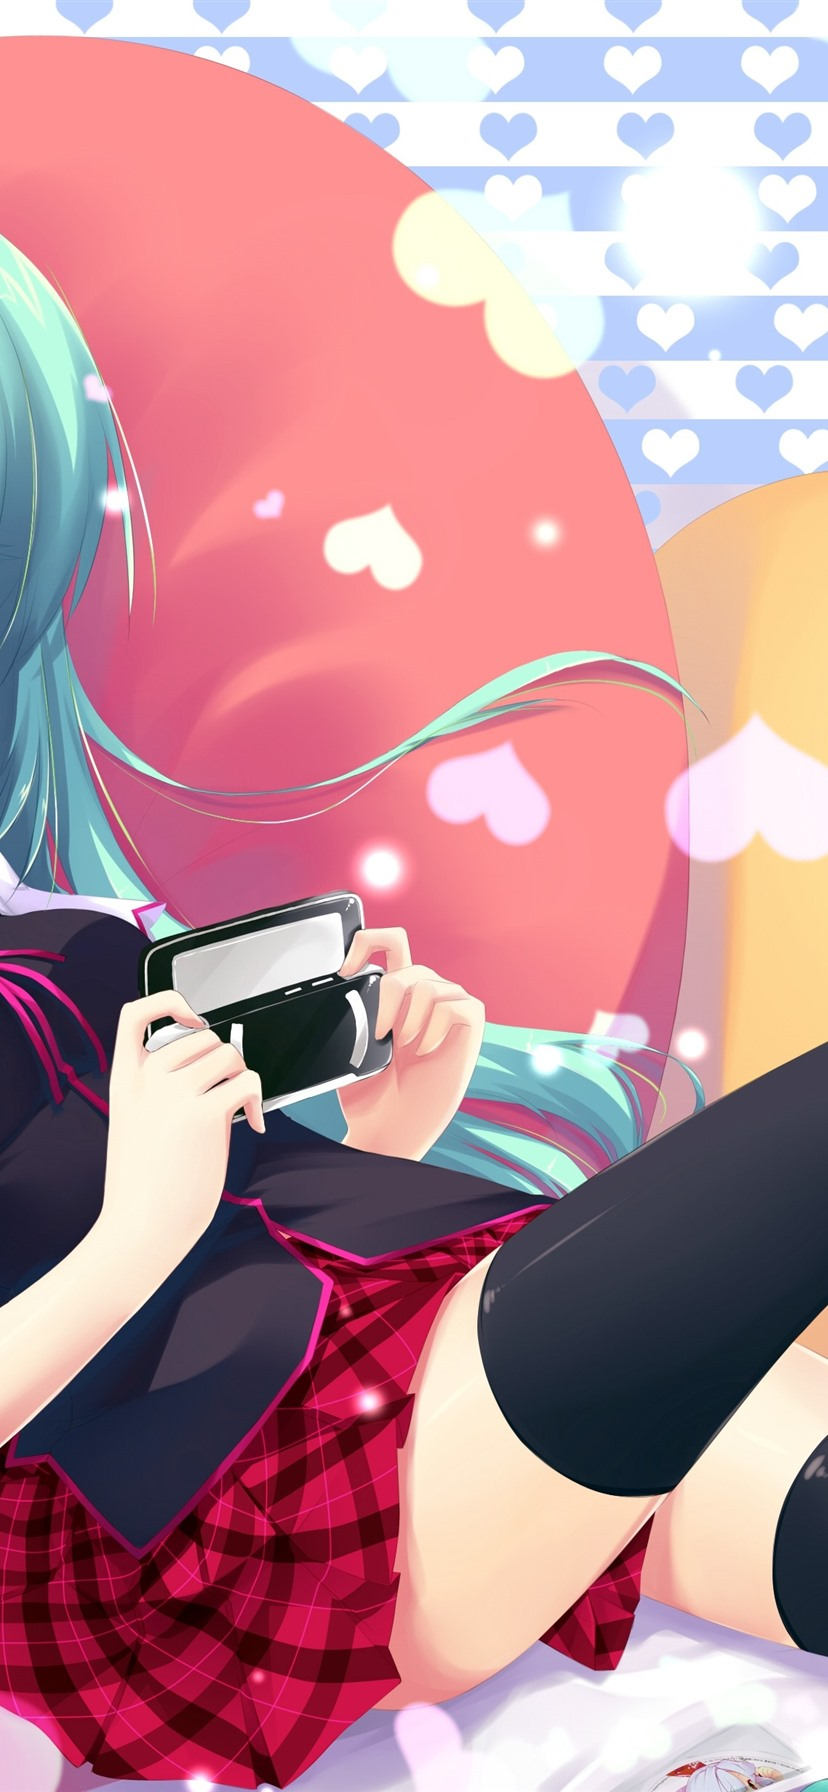 Hatsune Miku Cute Anime Girl Blue Hair 1125x2436 Iphone 11 Pro Xs X Wallpaper Background Picture Image